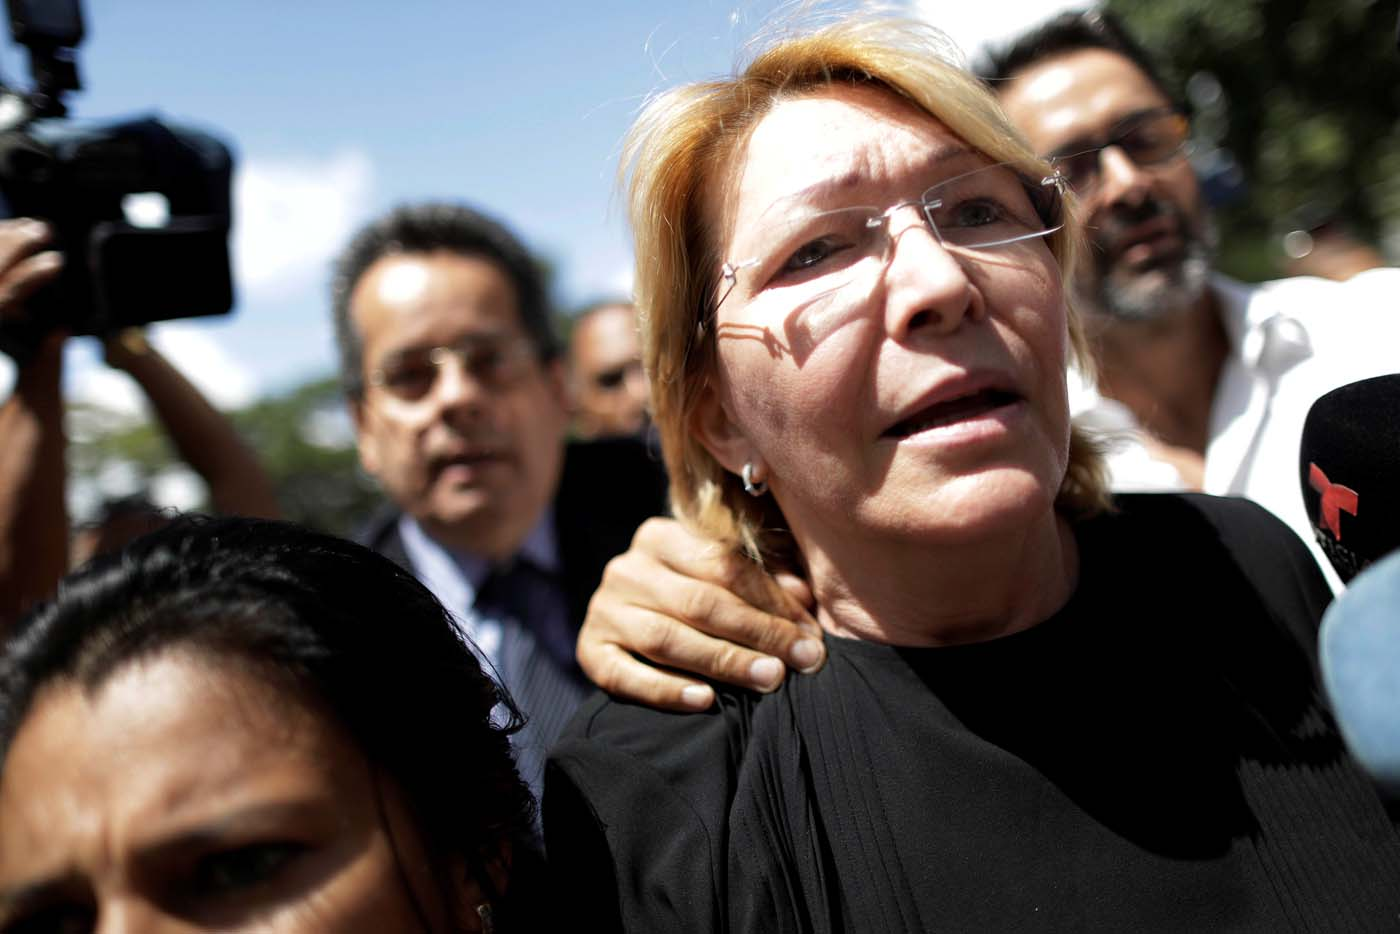 Venezuela's chief prosecutor Luisa Ortega Diaz is seen in front of the Public prosecutor's office in Caracas, Venezuela August 5, 2017. REUTERS/Ueslei Marcelino